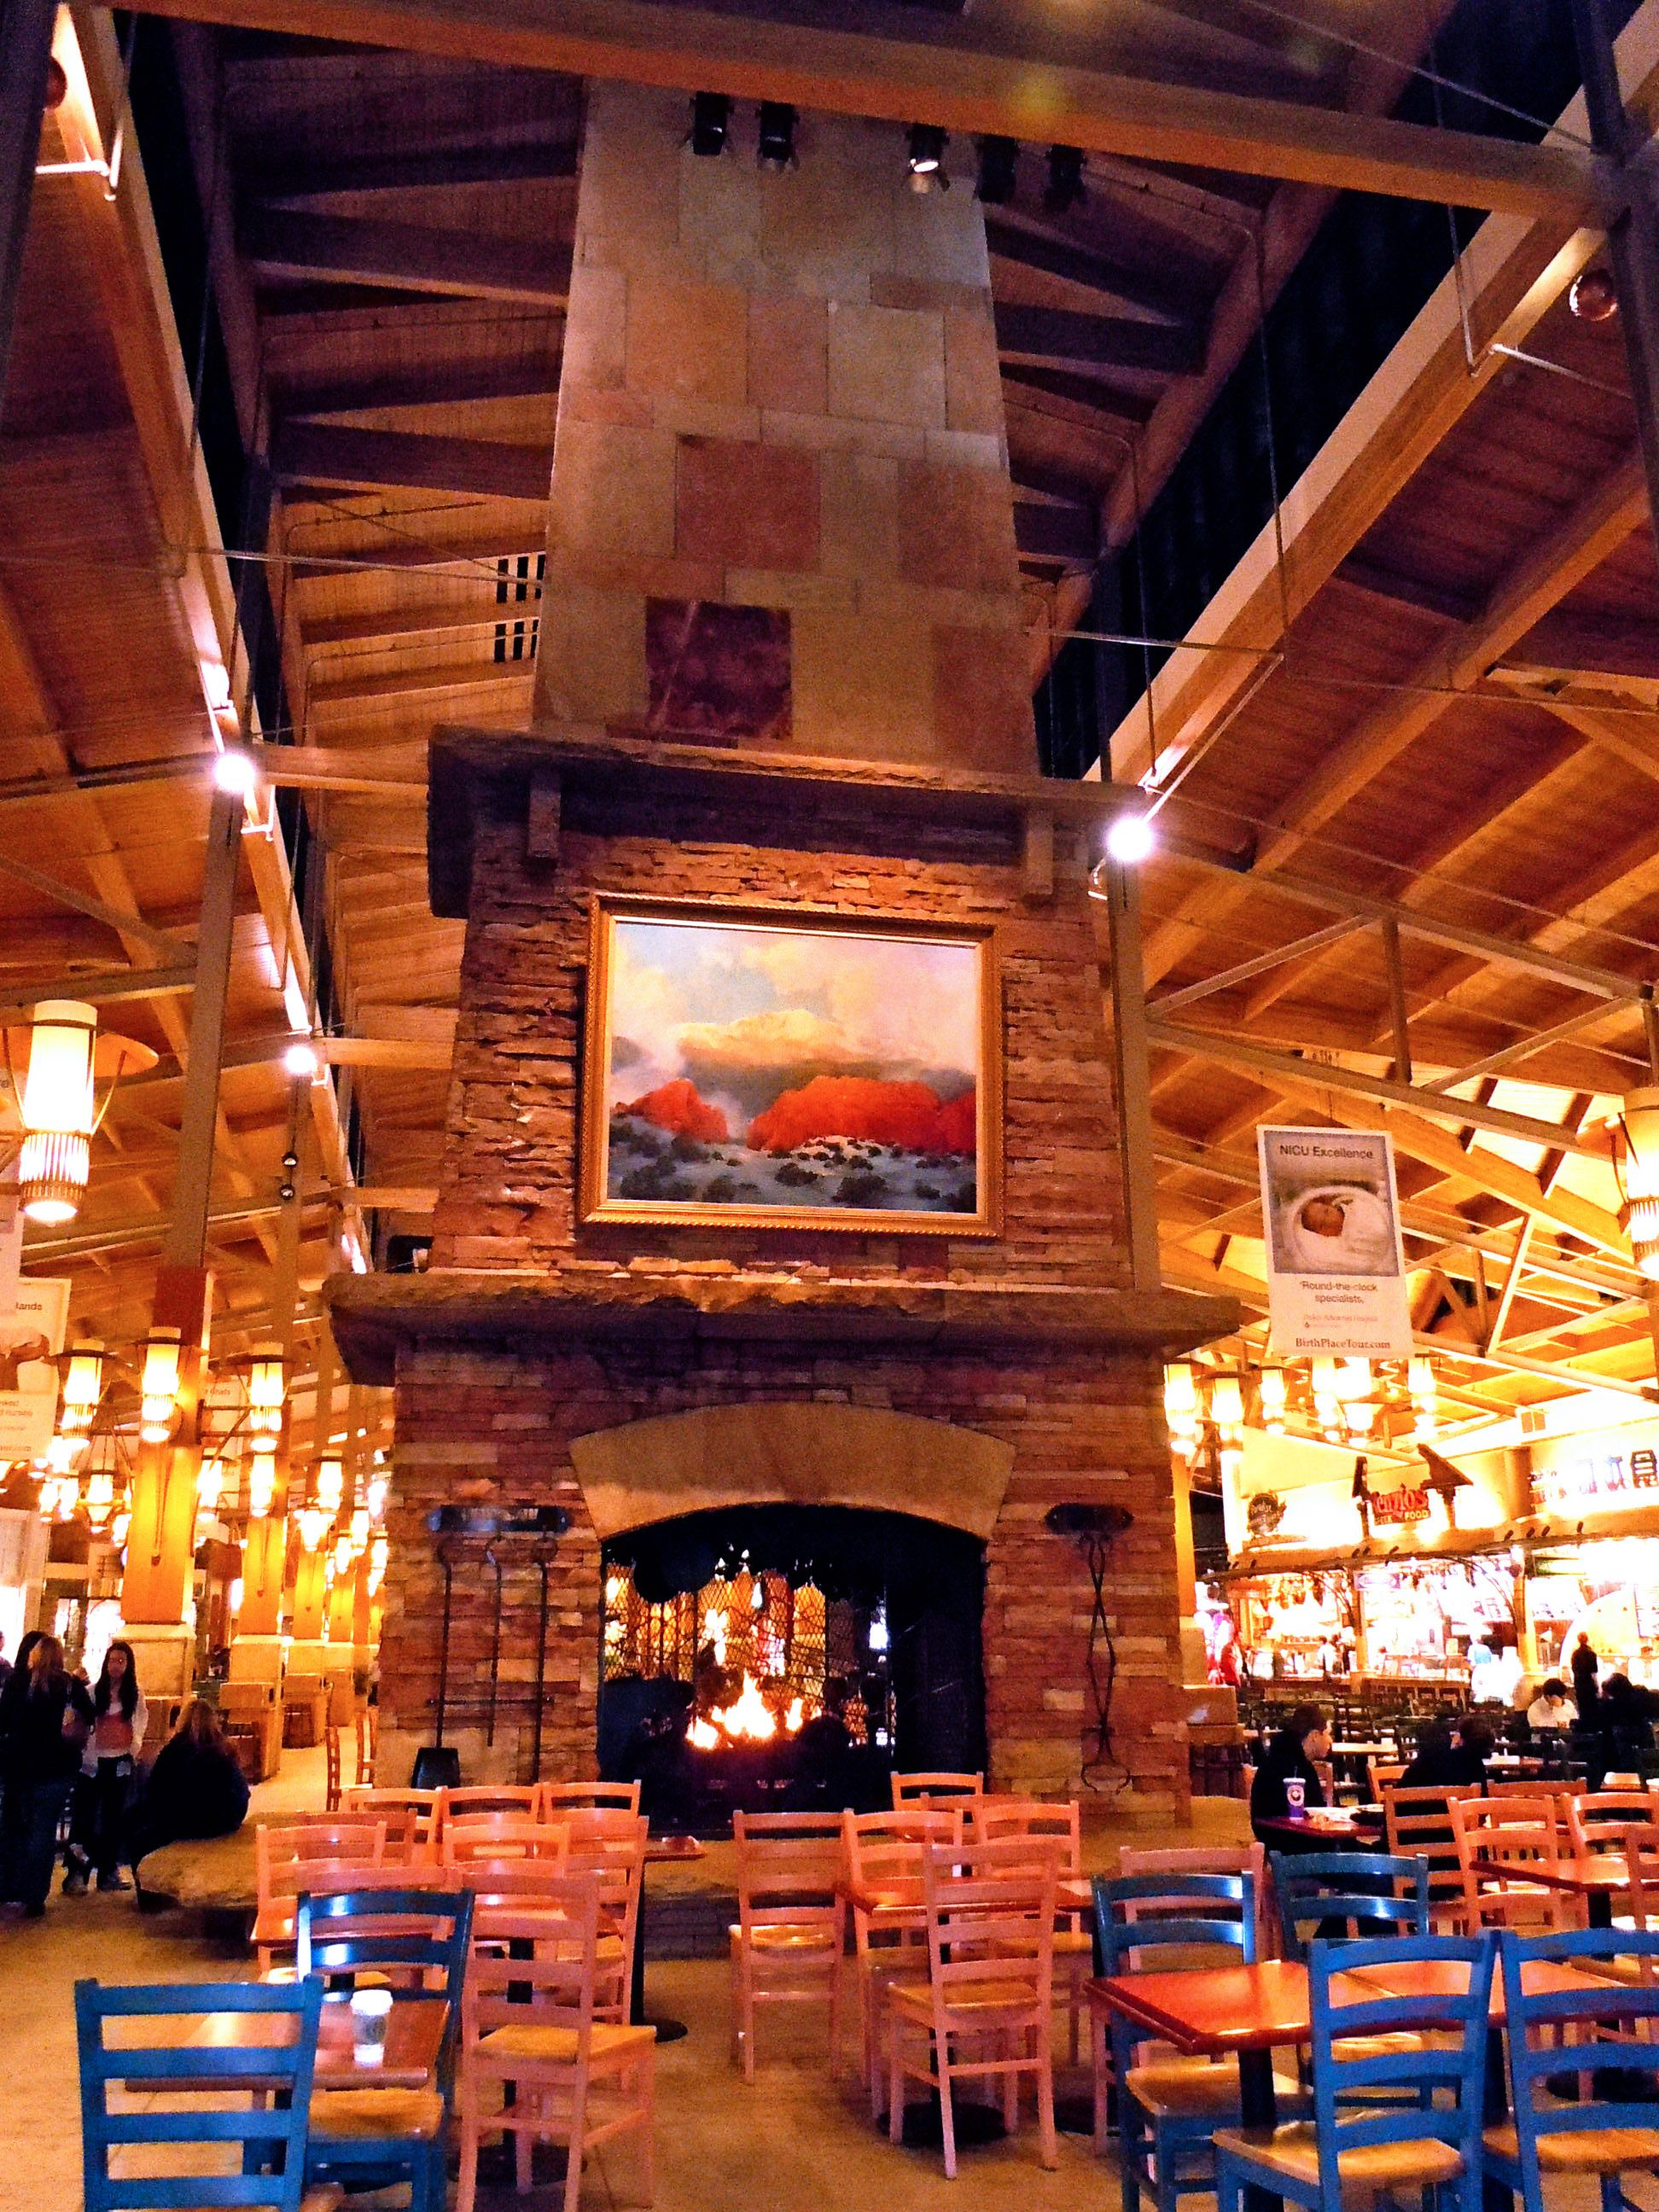 park meadows mall | The food court at the mall has a massive fireplace that I'd love in ...